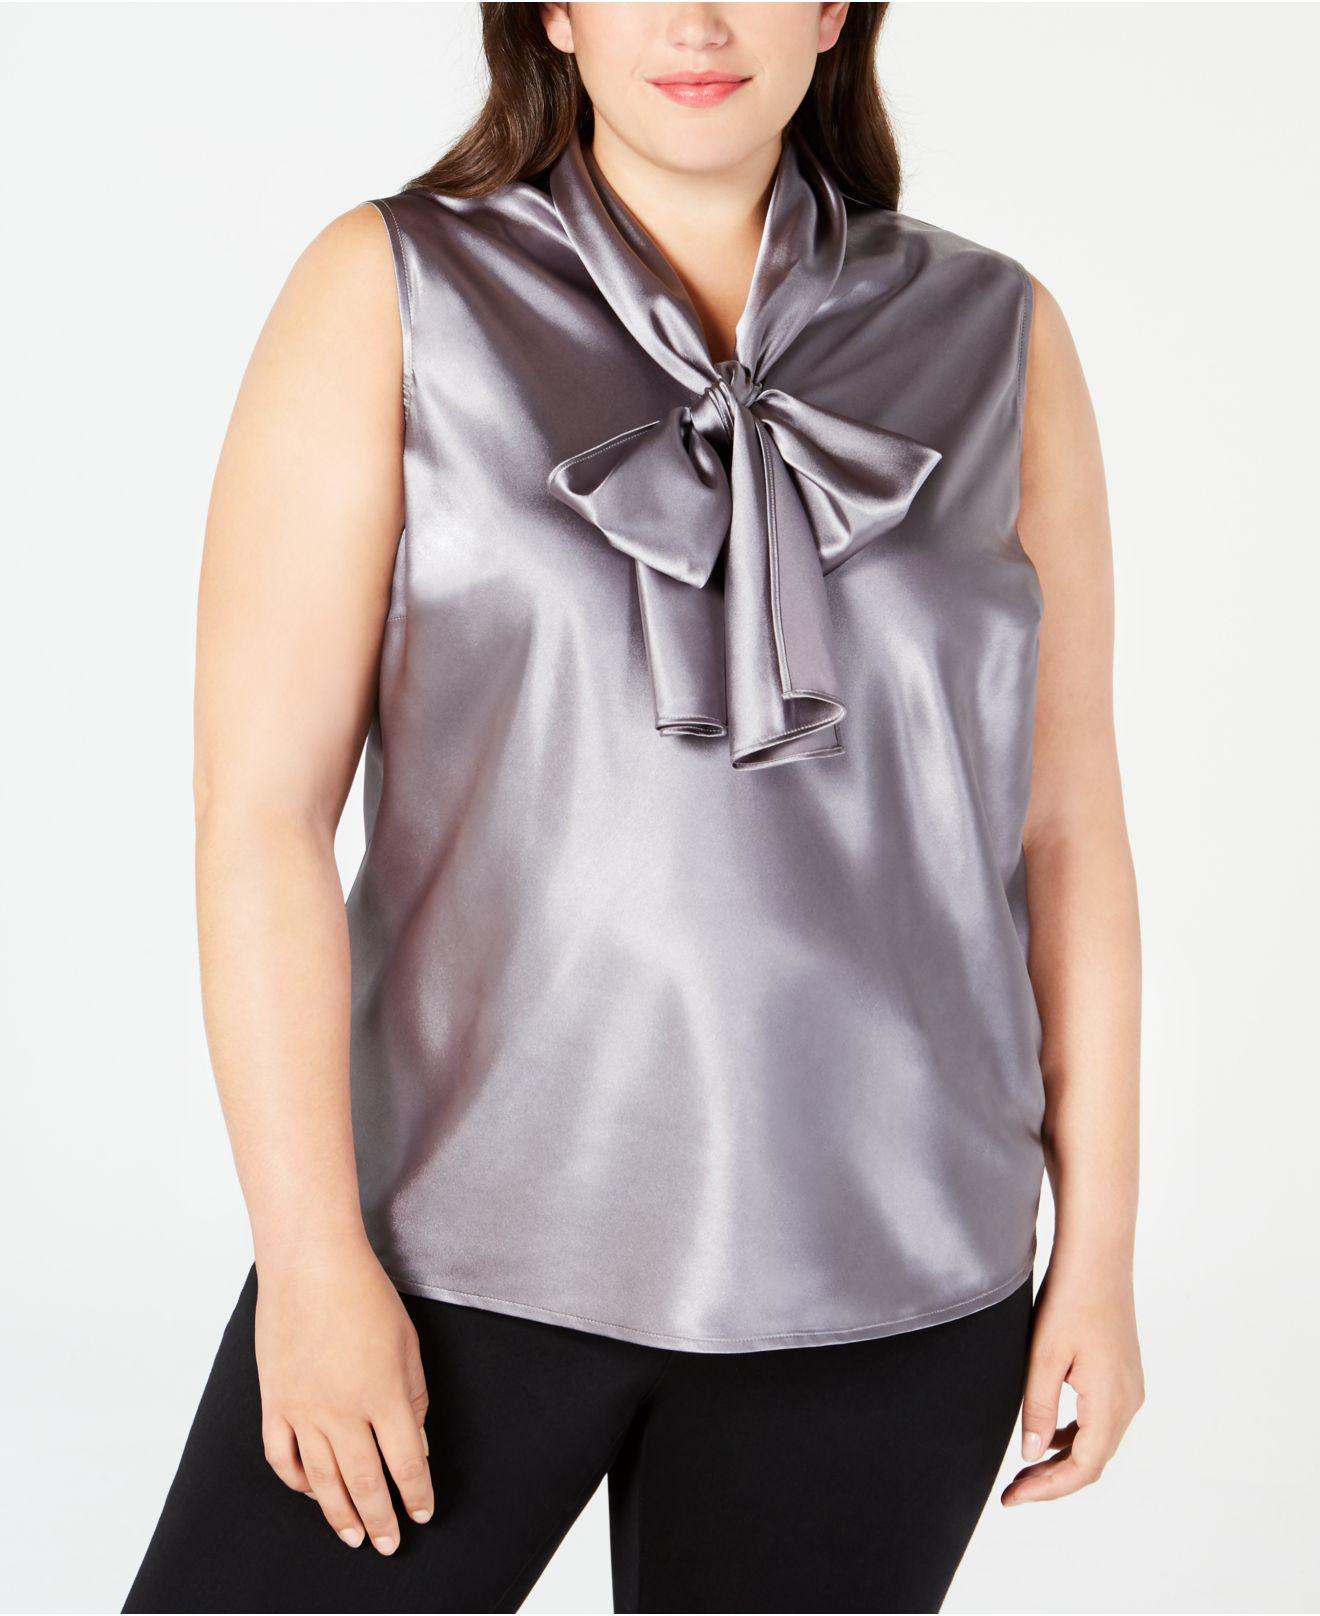 bdce6abb95a23 Lyst - Nine West Plus Size Tie-neck Sleeveless Camisole